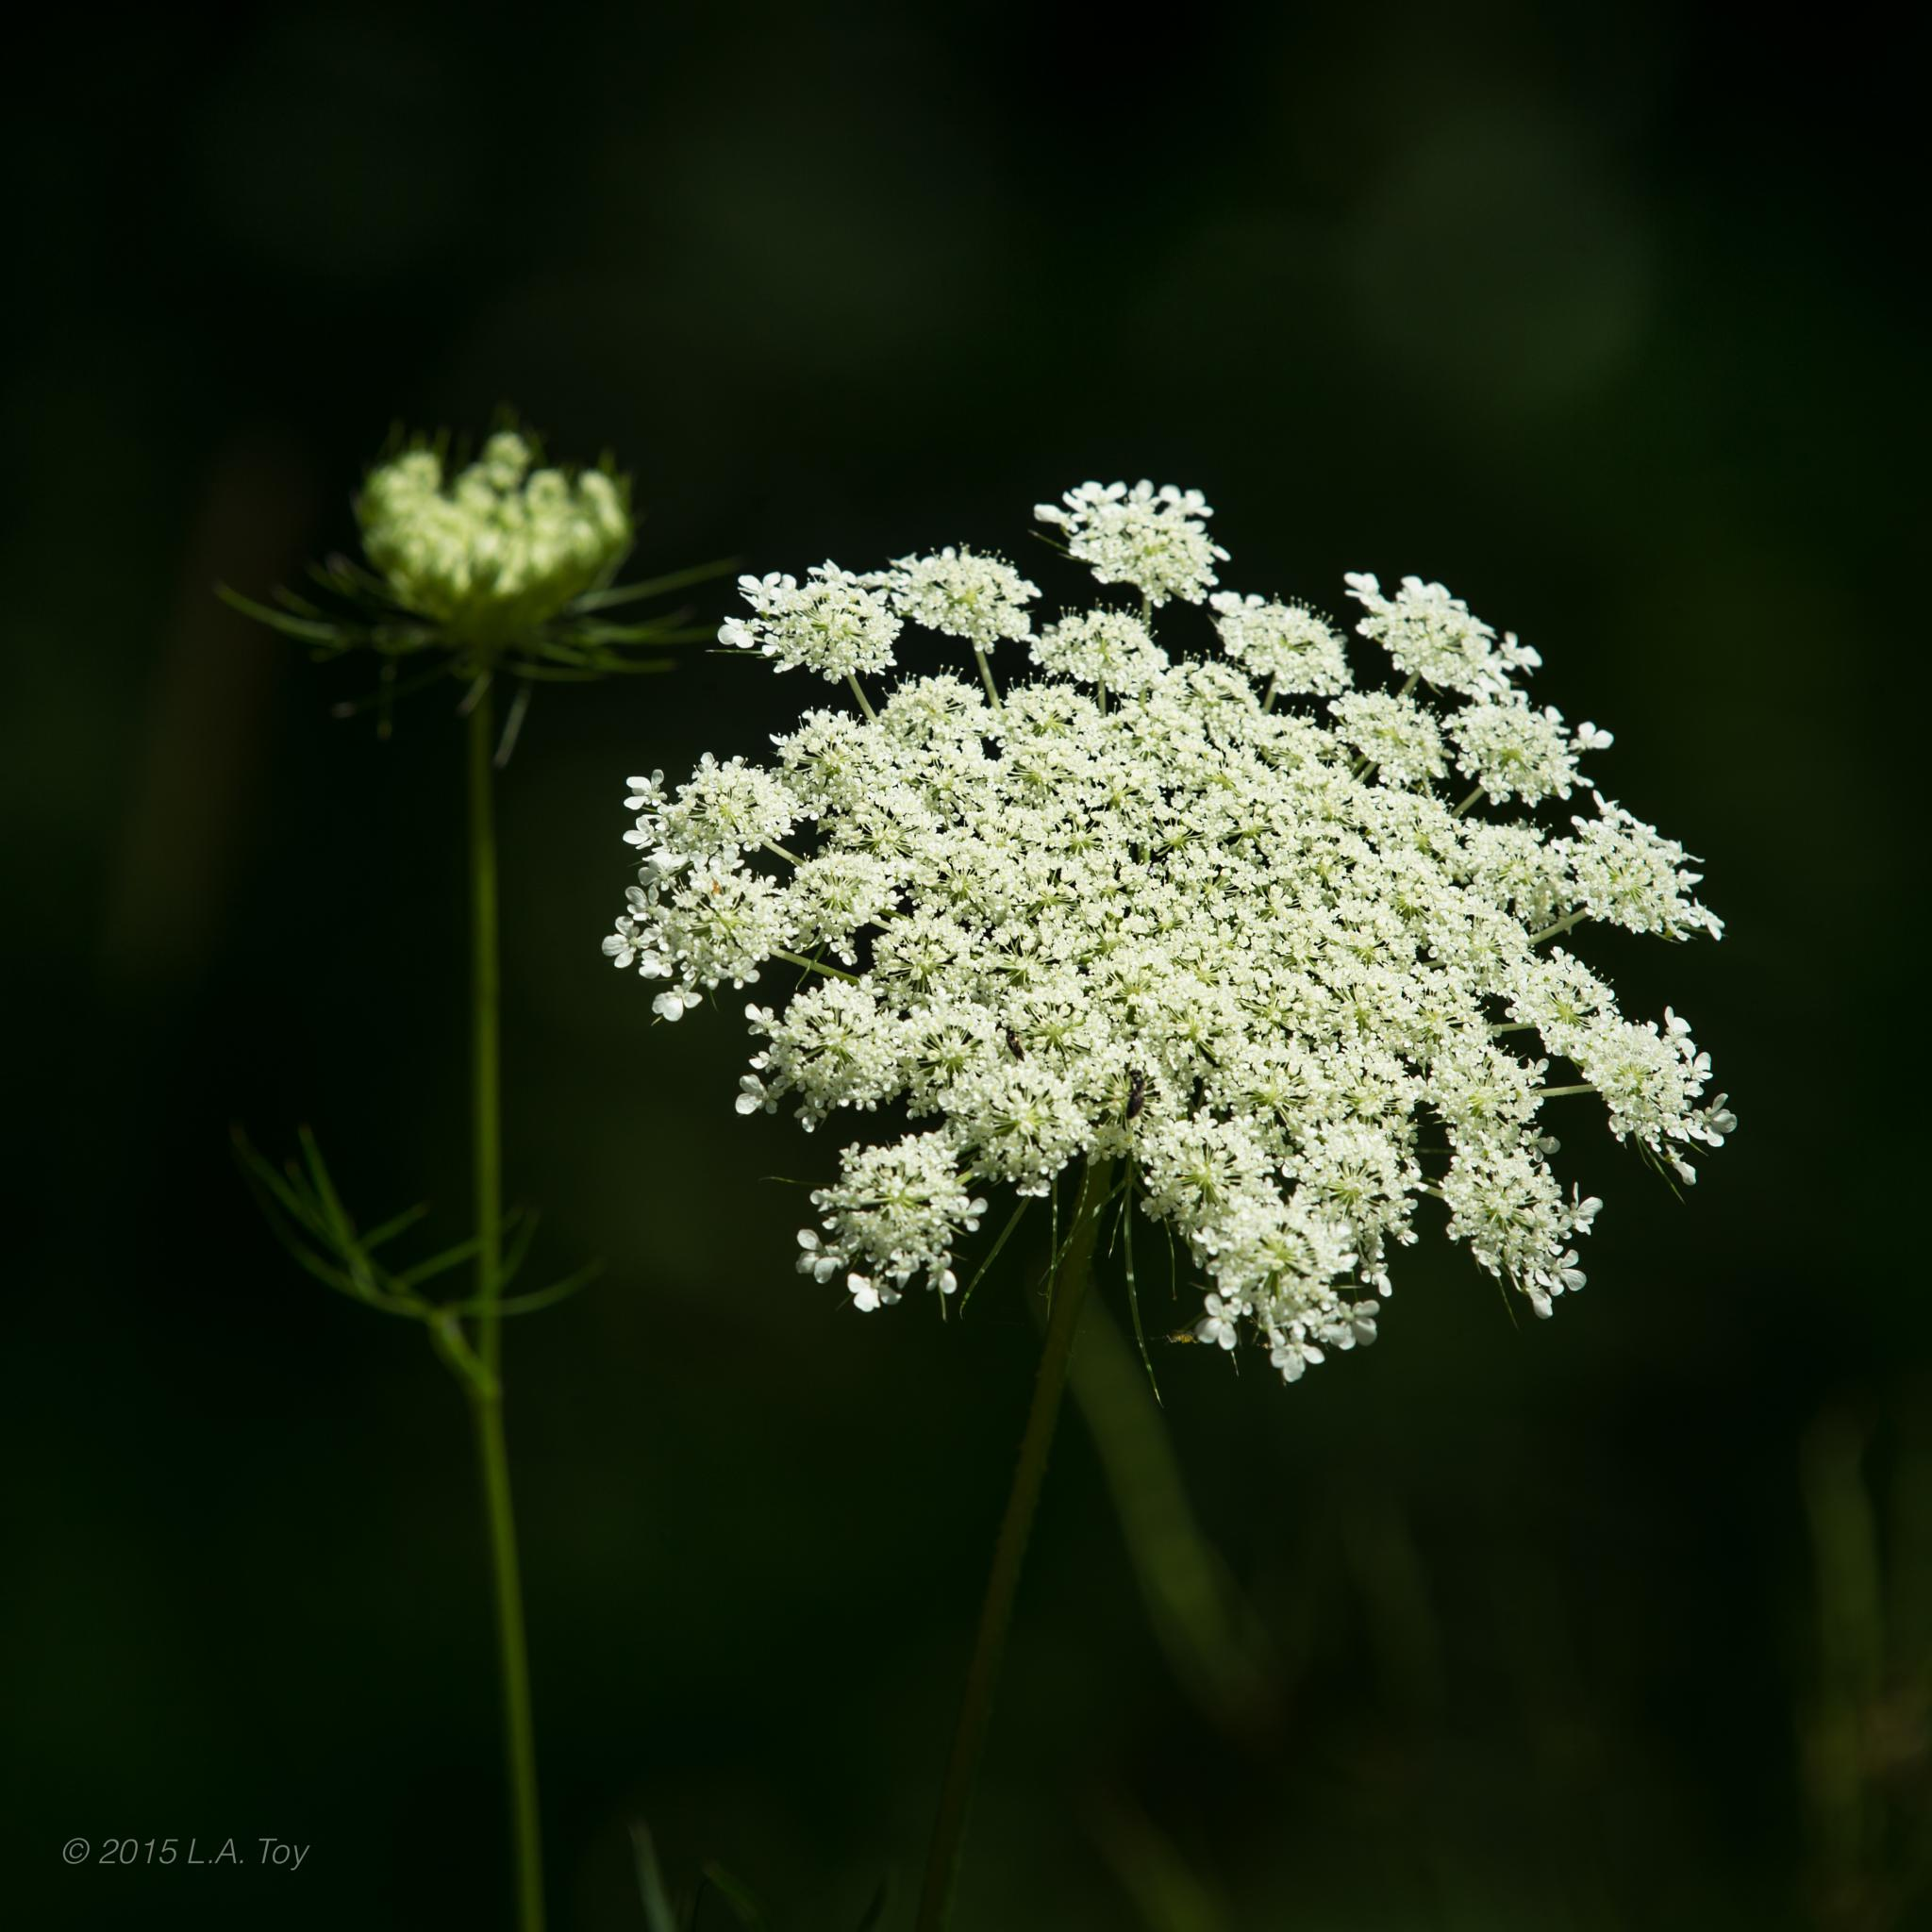 Natures Lace by L.A. Toy